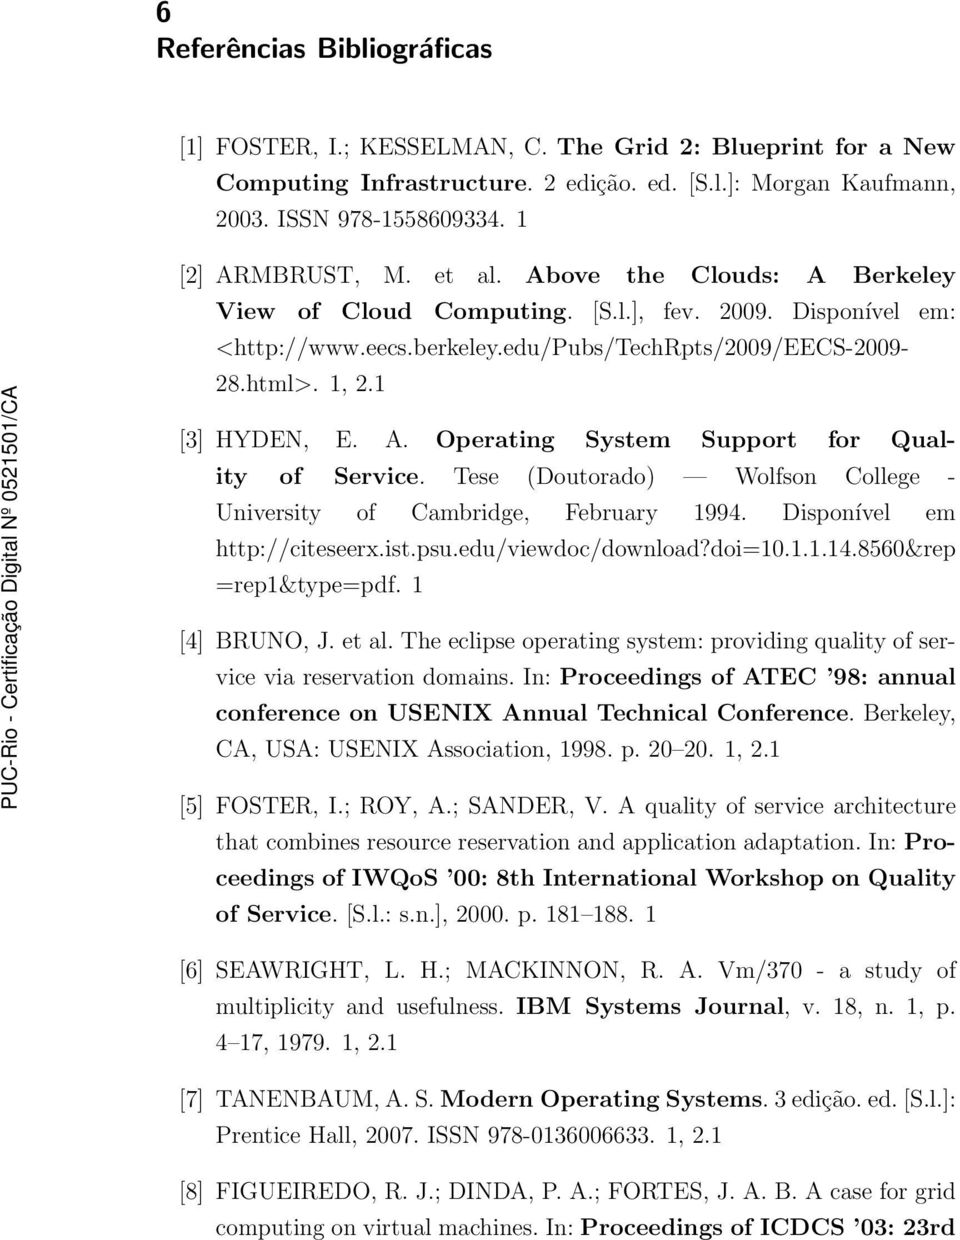 1 [3] HYDEN, E. A. Operating System Support for Quality of Service. Tese (Doutorado) Wolfson College - University of Cambridge, February 1994. Disponível em http://citeseerx.ist.psu.